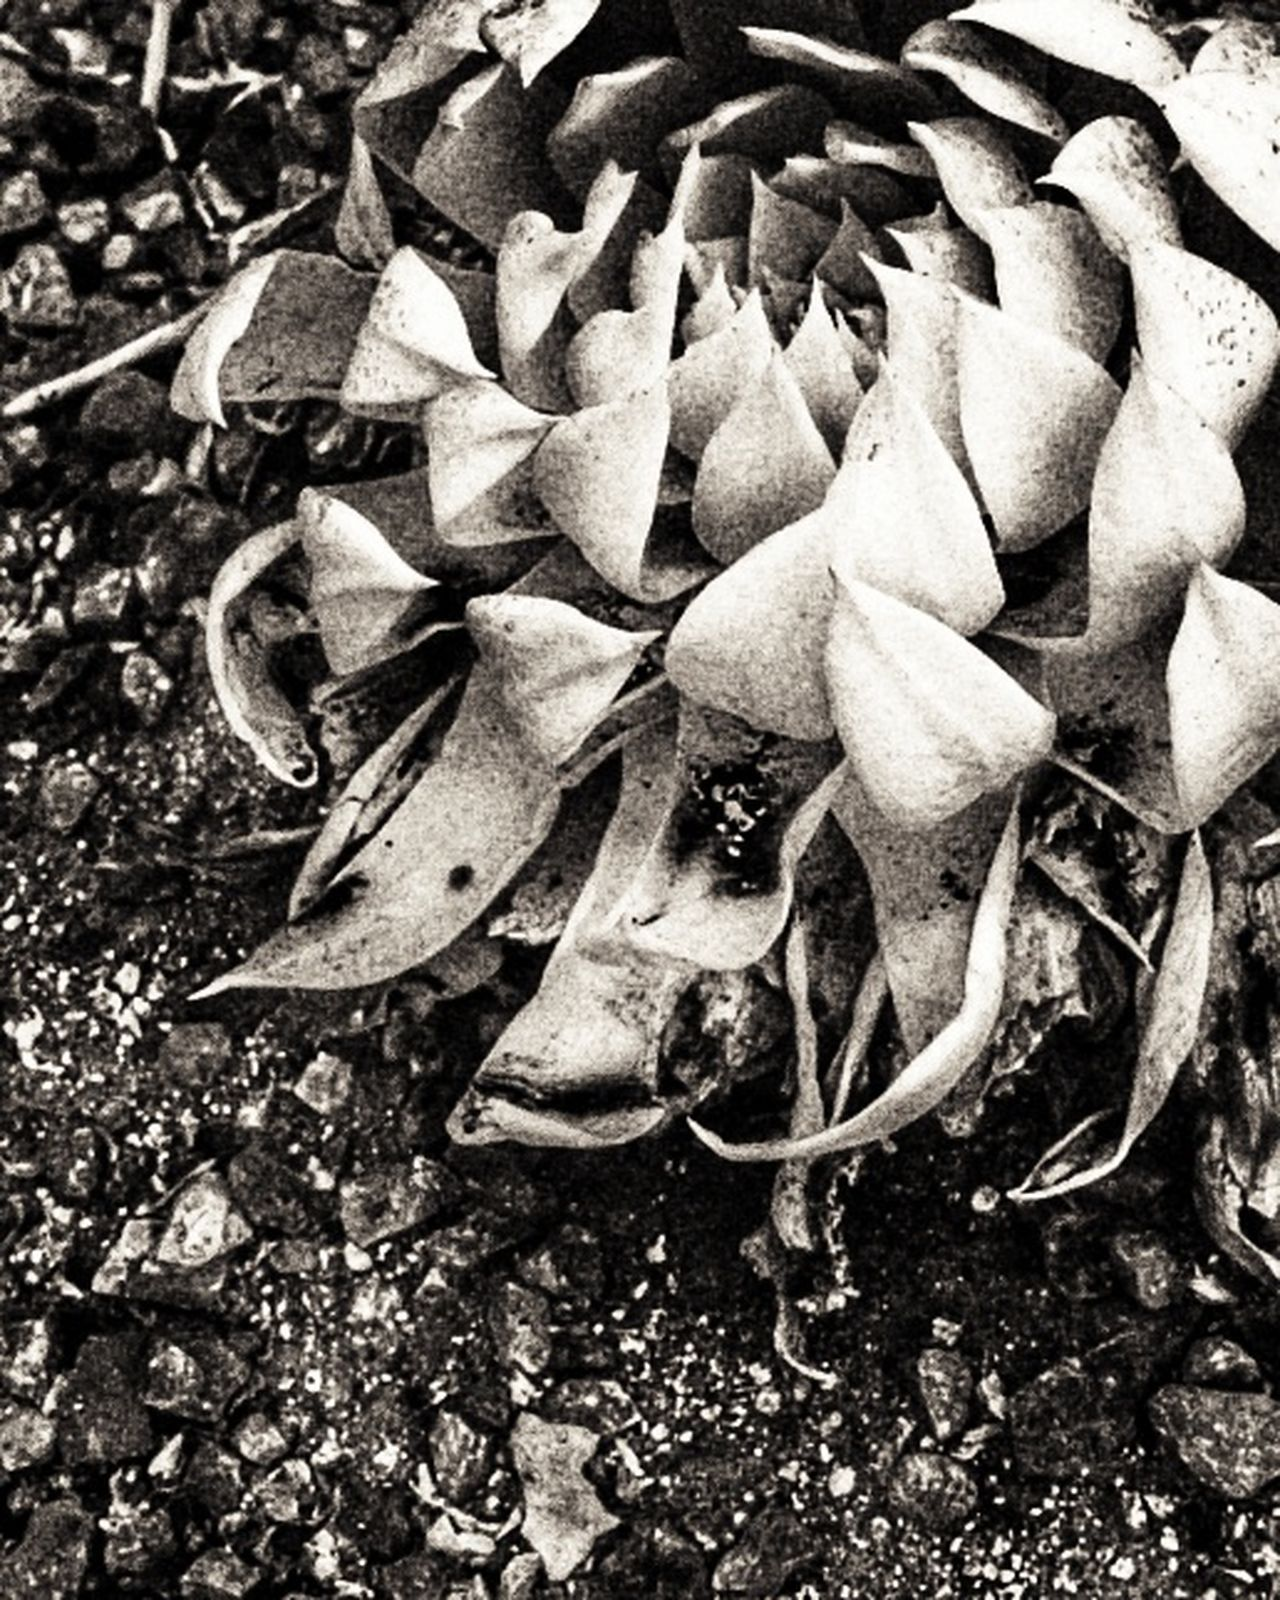 plant among the rocks Nature Outdoors Growth Close-up No People Beauty In Nature Day Flower Special Effects Black And White Collection Black And White Collection Donated To Johnson & Johnson Jonhson And Johnson Donation Collection Black And White ❤ Johnson & Johnson Donate To Help Black And White Photography Donation = Sharing Creativity Adopt To Save A Life Plant Beauty In Nature Nature